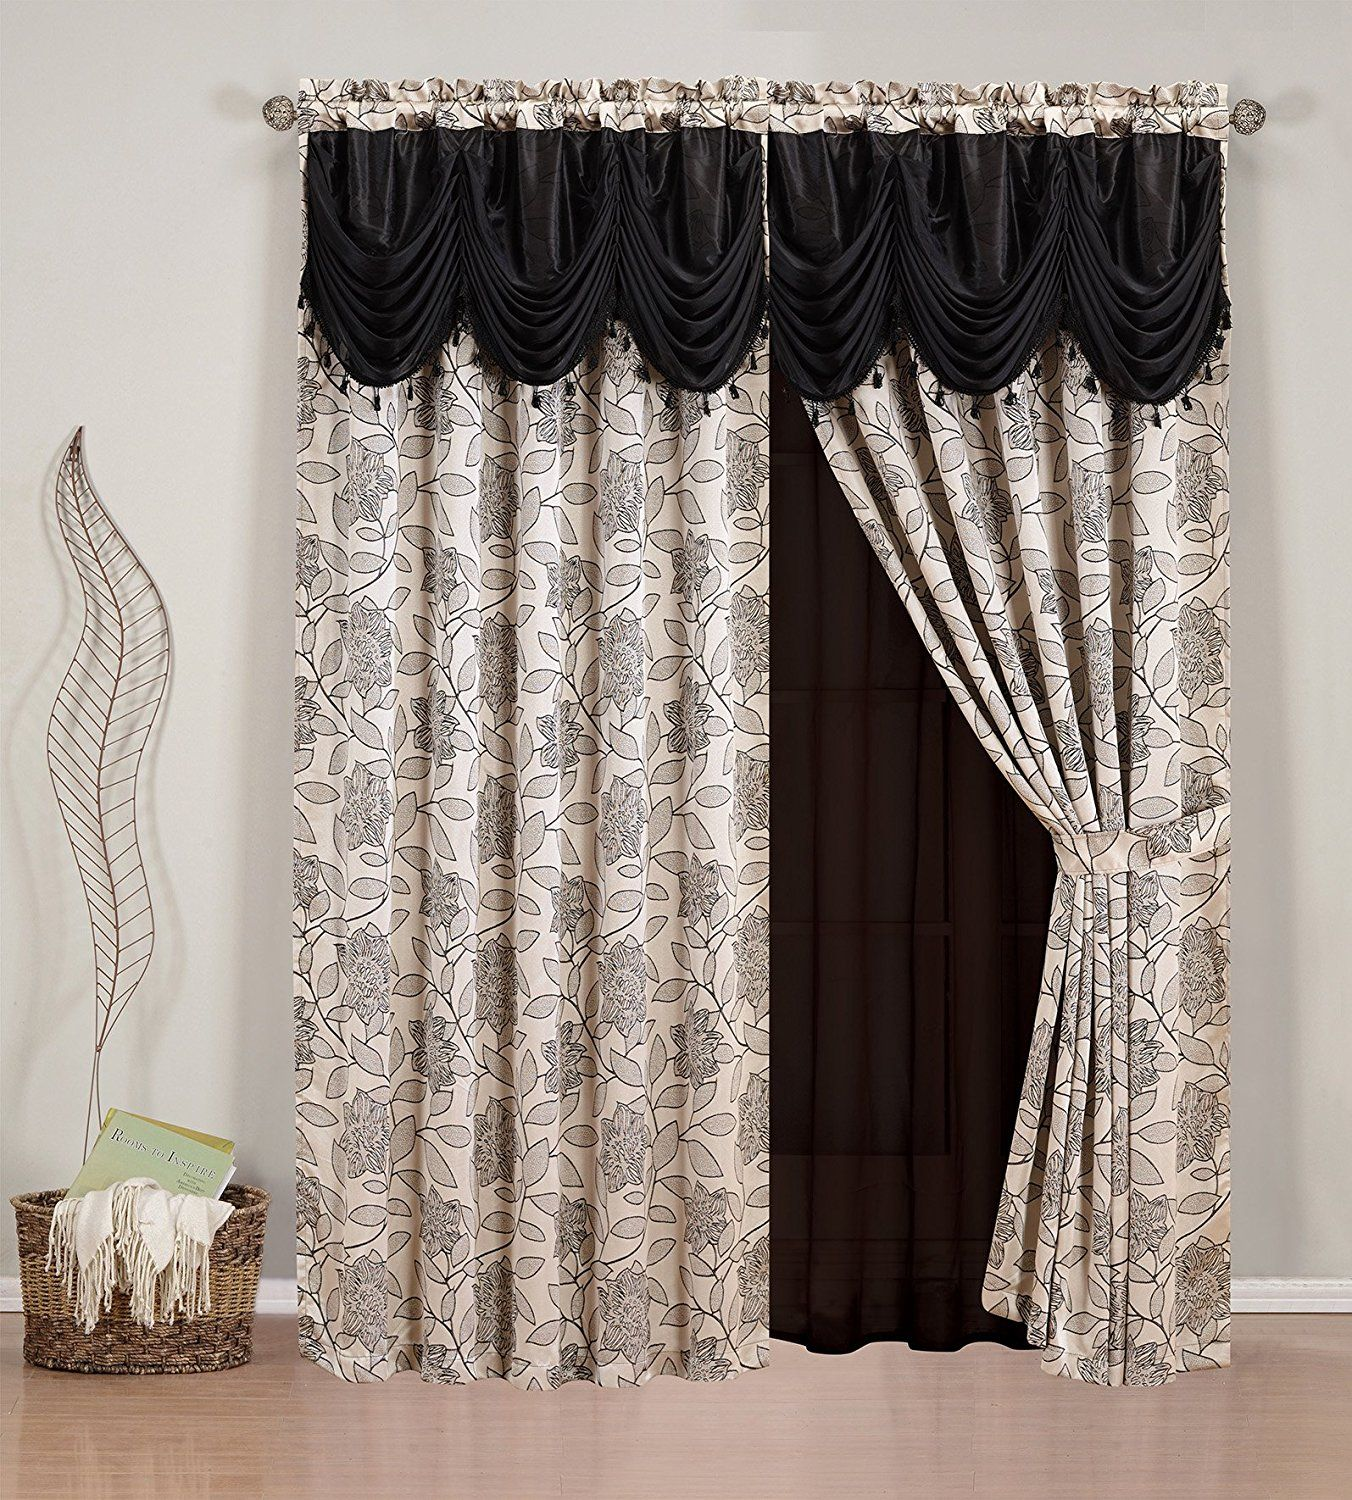 Elegant Home Beautiful Black Beige Window Embroidery Curtain Drapes All In One Set With Attached Valance And Sheer Backing For Living Room Bedroom